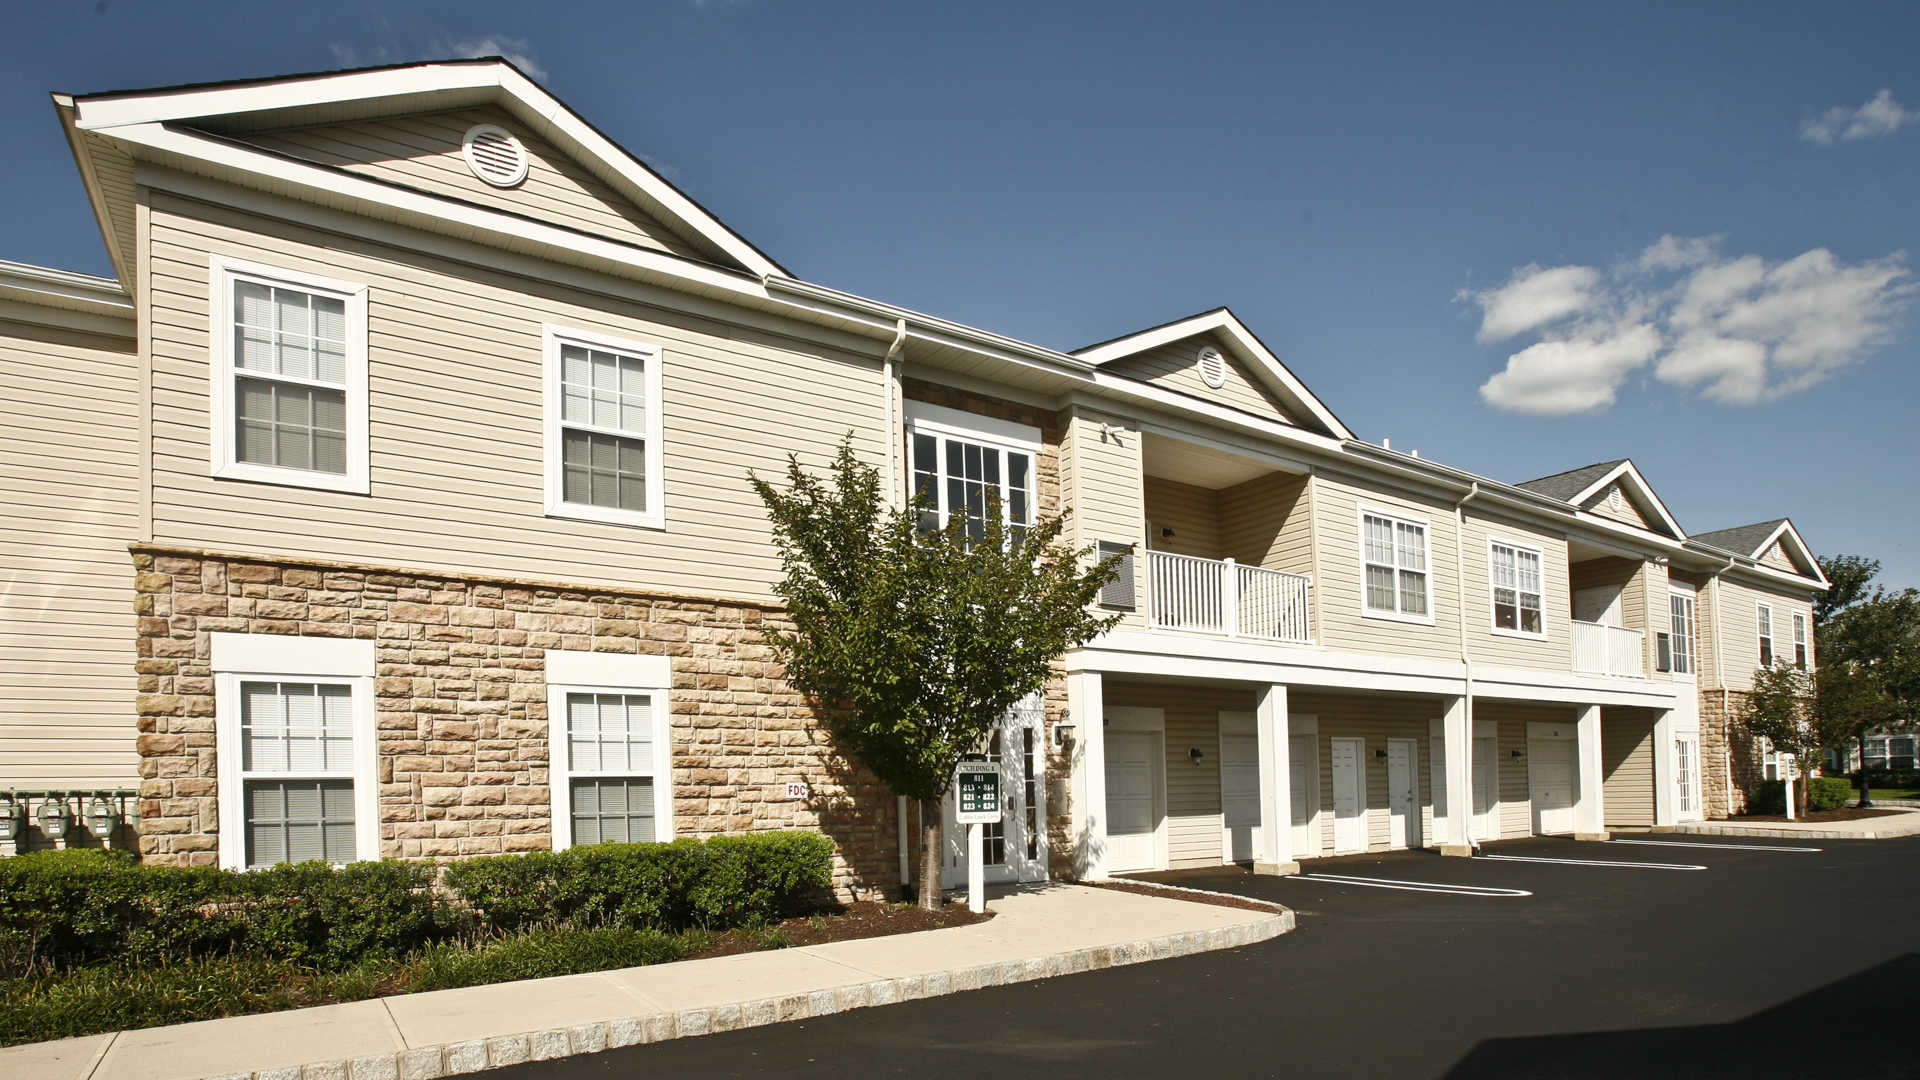 Highlands at Cherry Hill Apartments - Cherry Hill, NJ